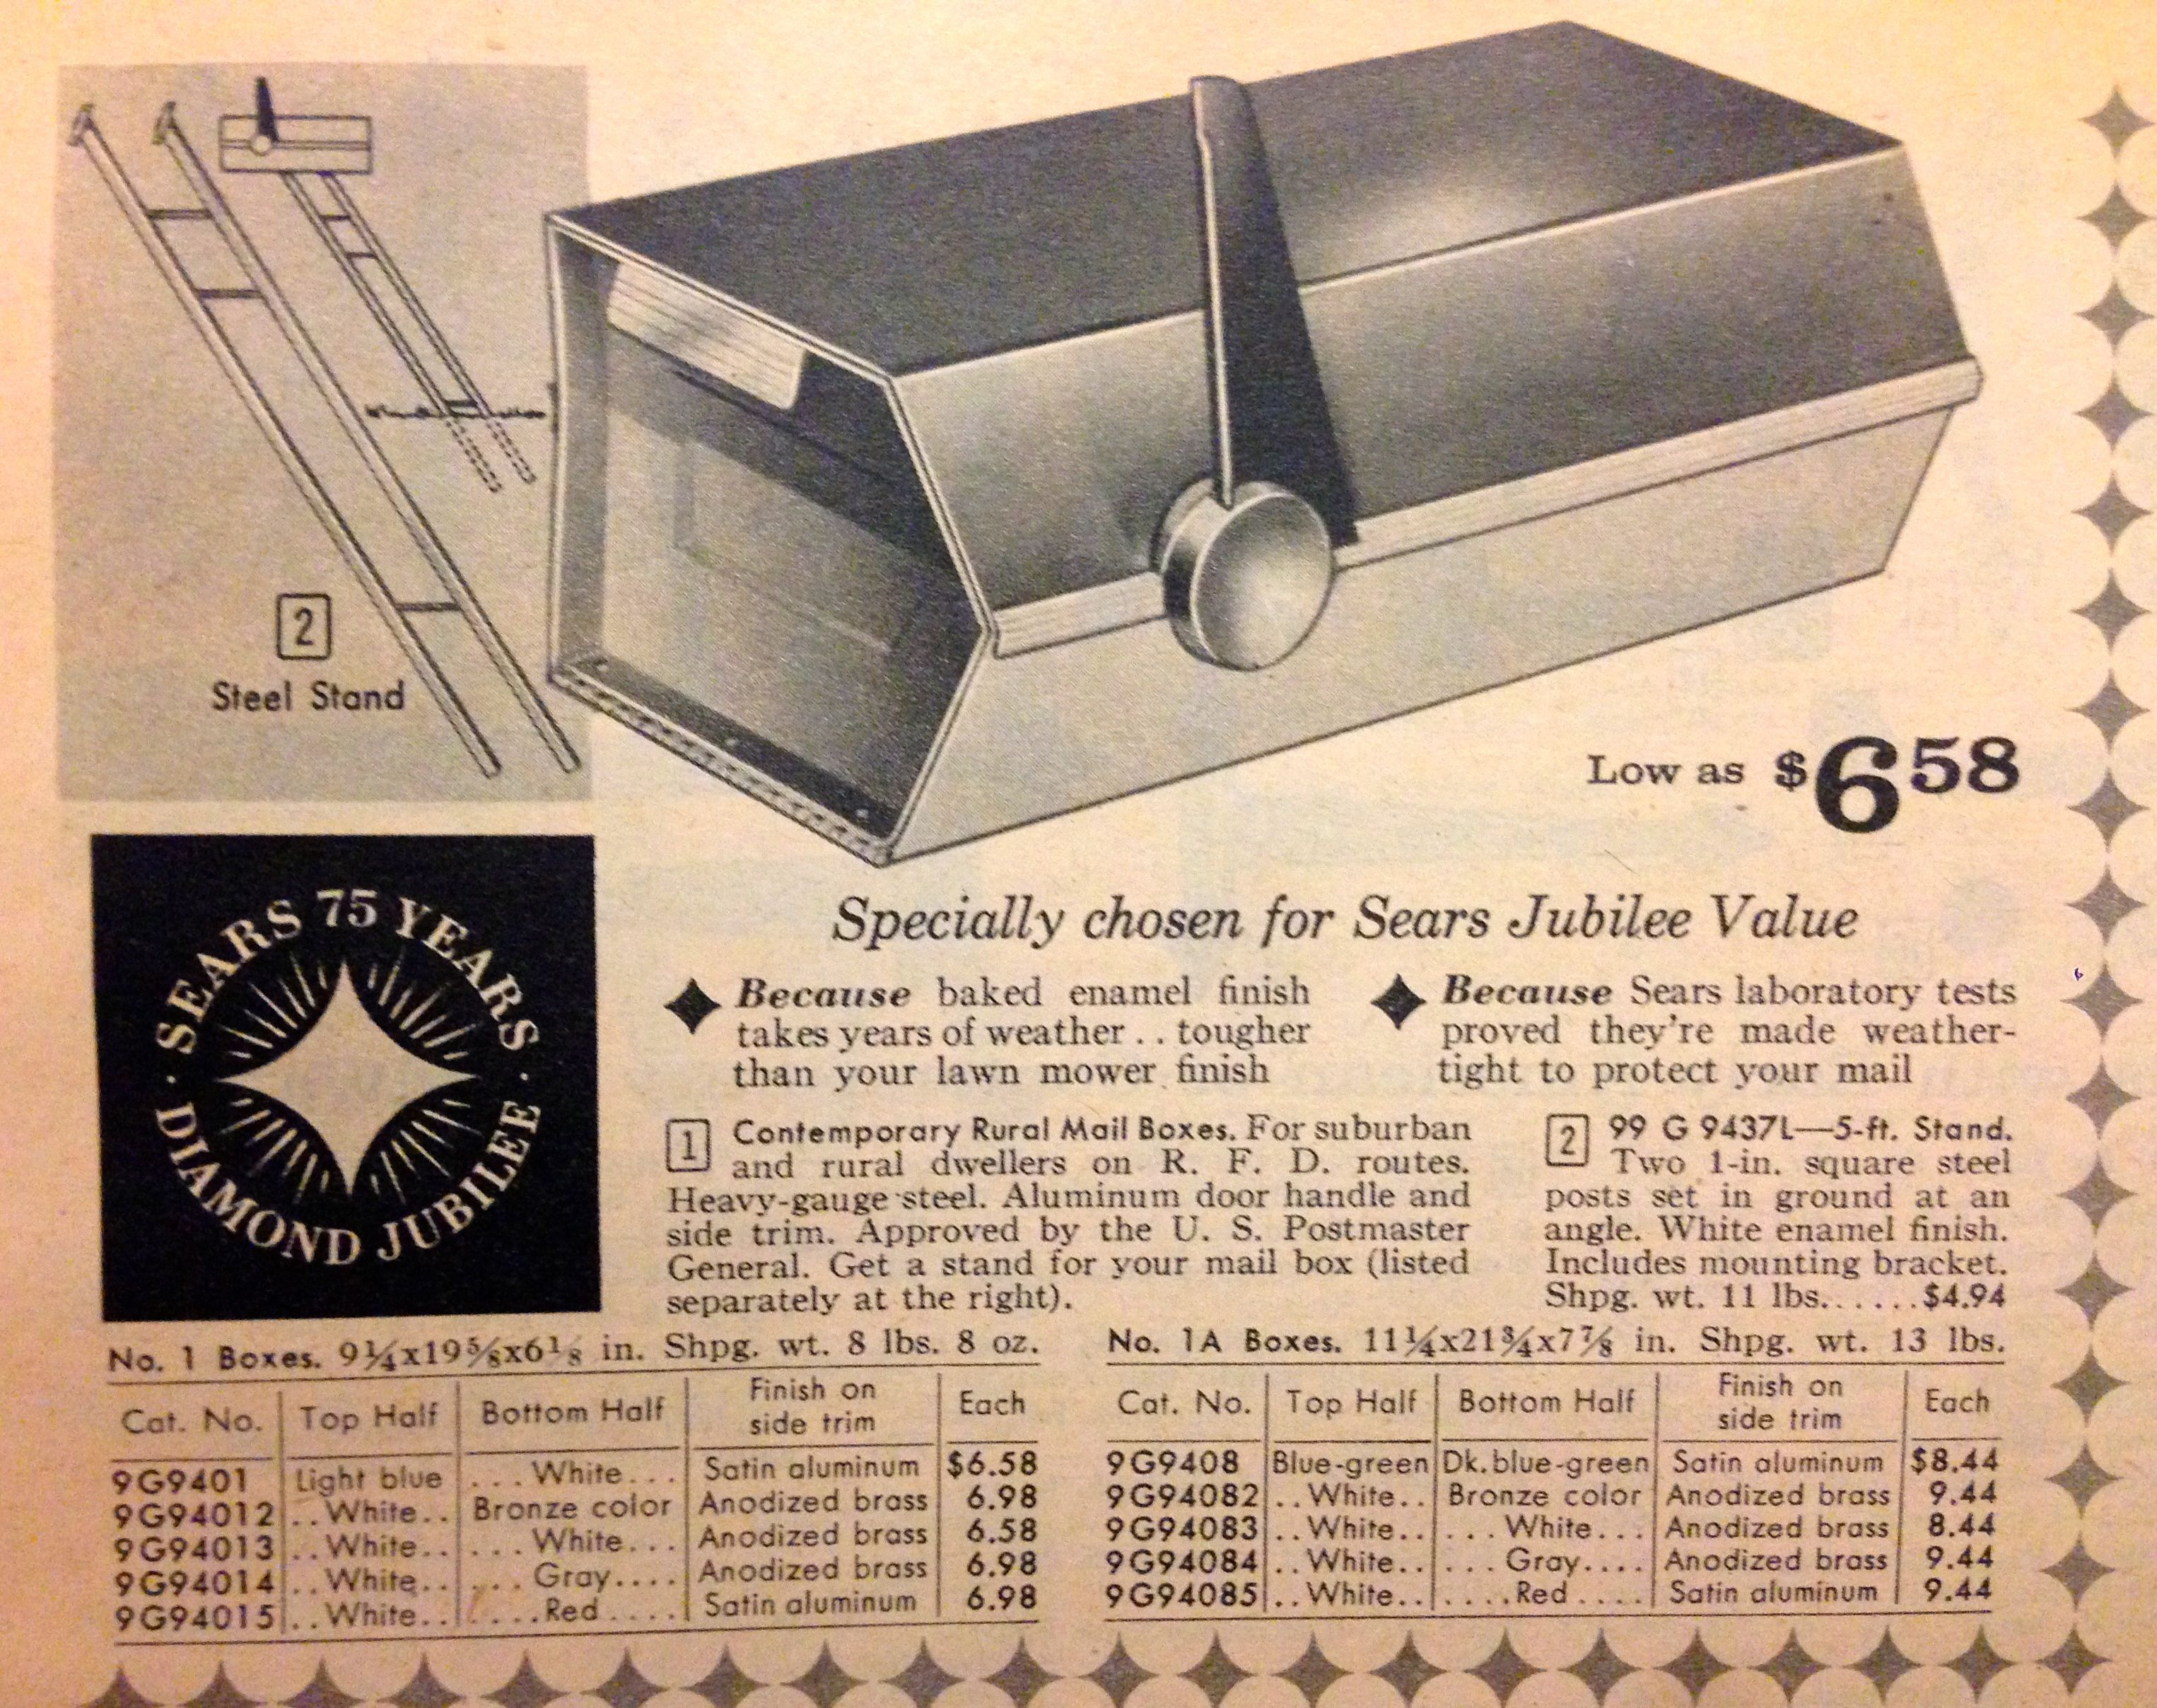 Mid Century Modern Mailbox Sears 75 Years Diamond Jubilee Catalog From 1961 Now That S Mid Ce Modern Mailbox Mid Century Modern Mailbox Mid Century Mailbox